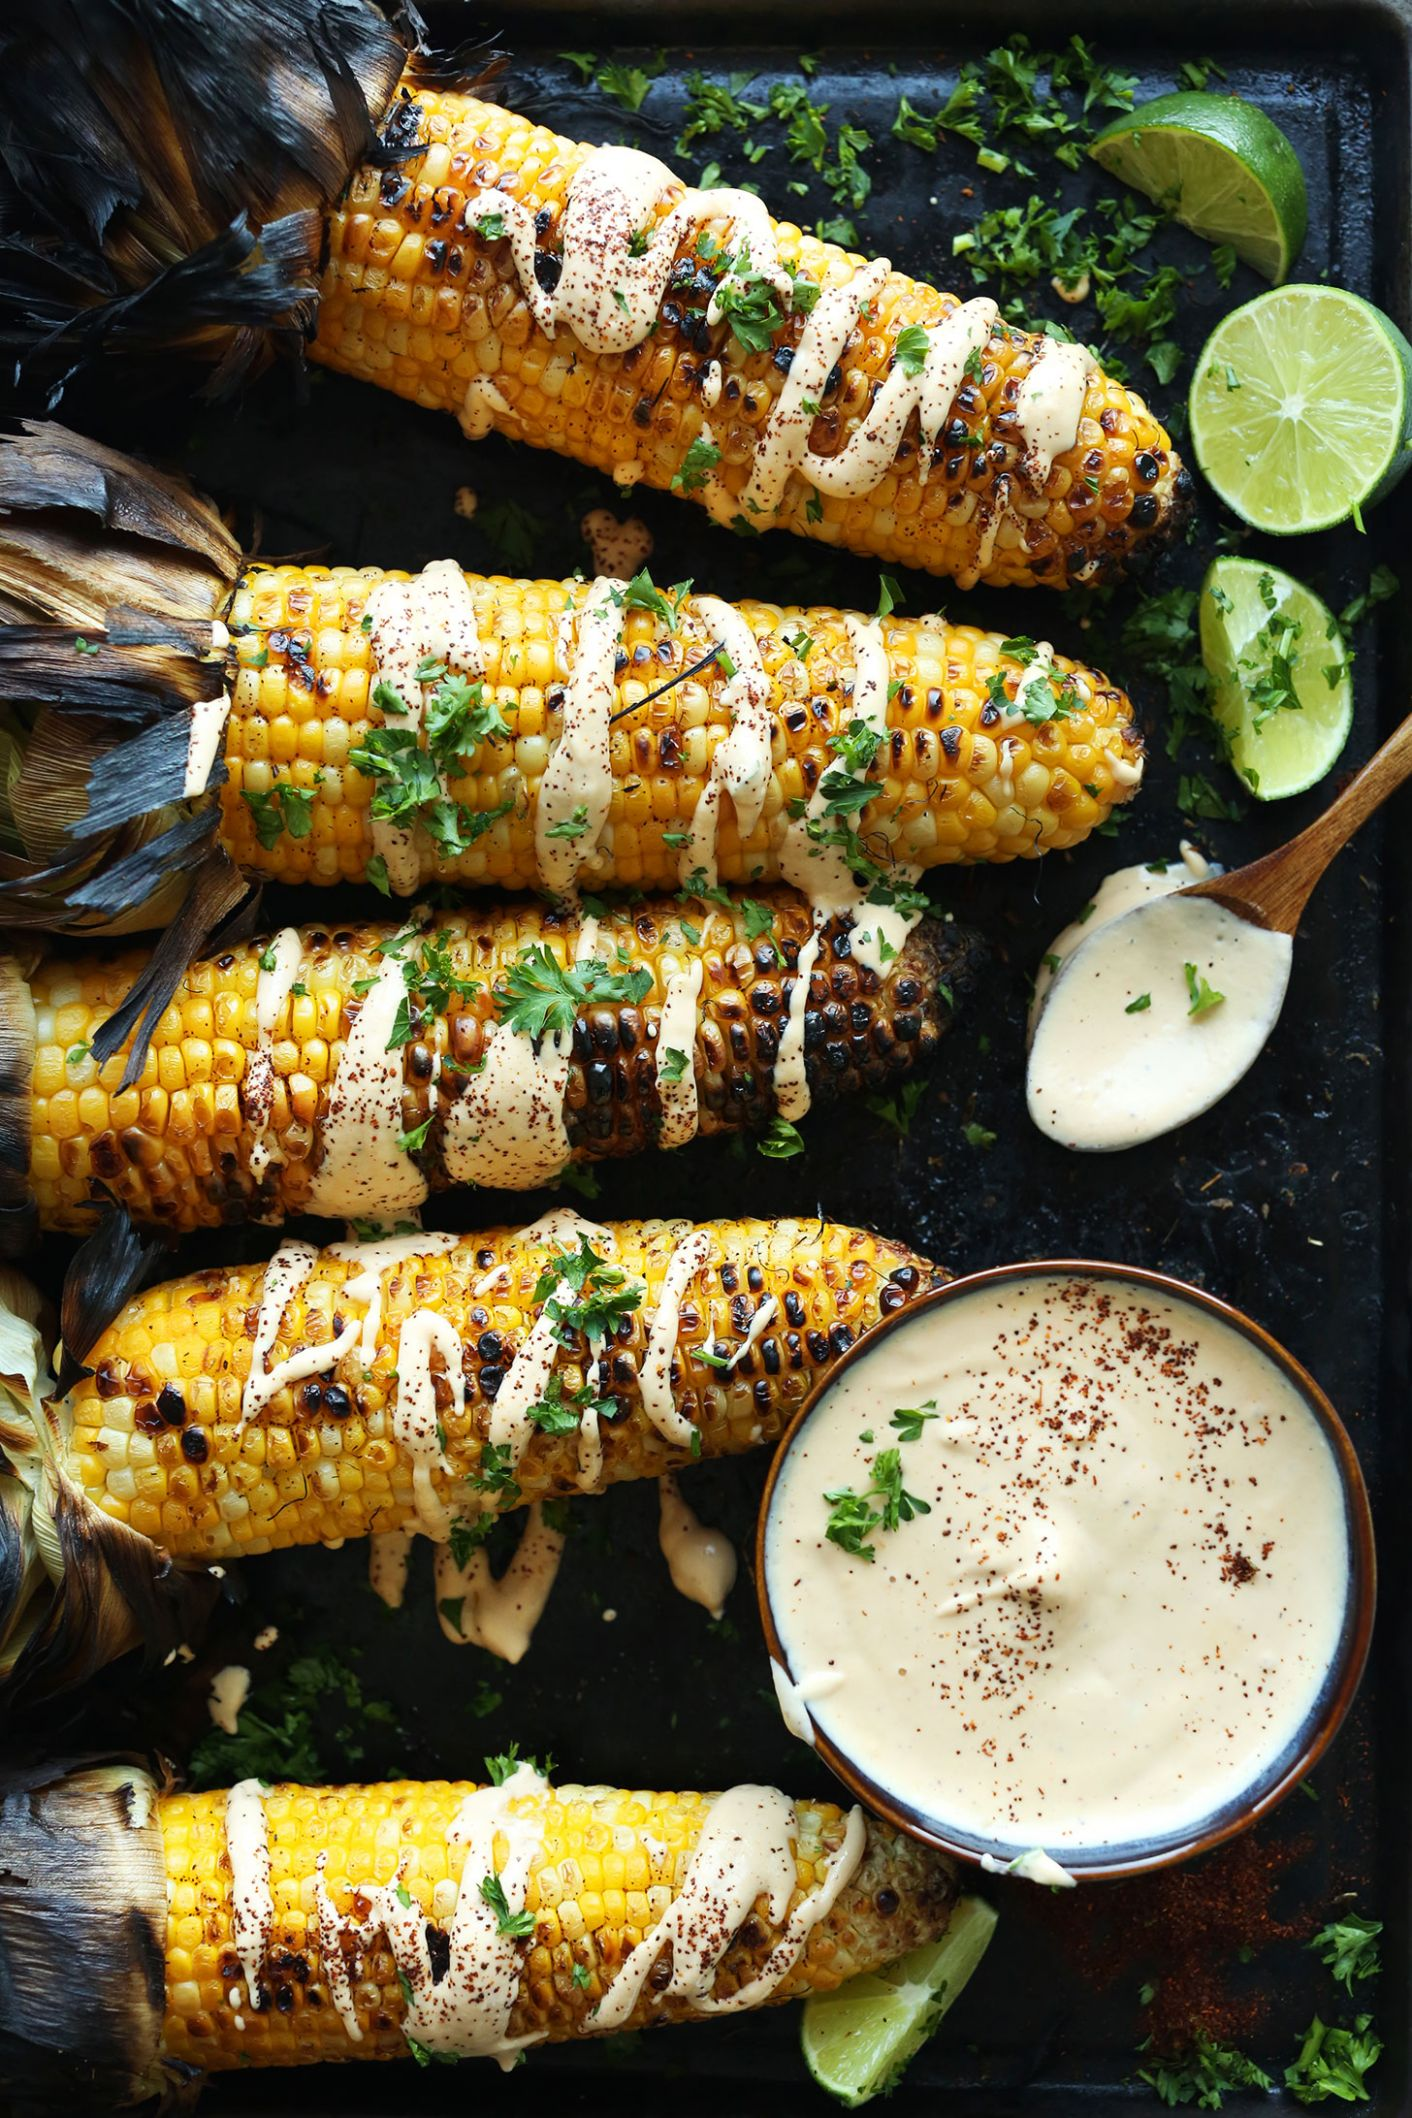 Grilled Corn with Sriracha Aioli - Easy Recipes On The Grill